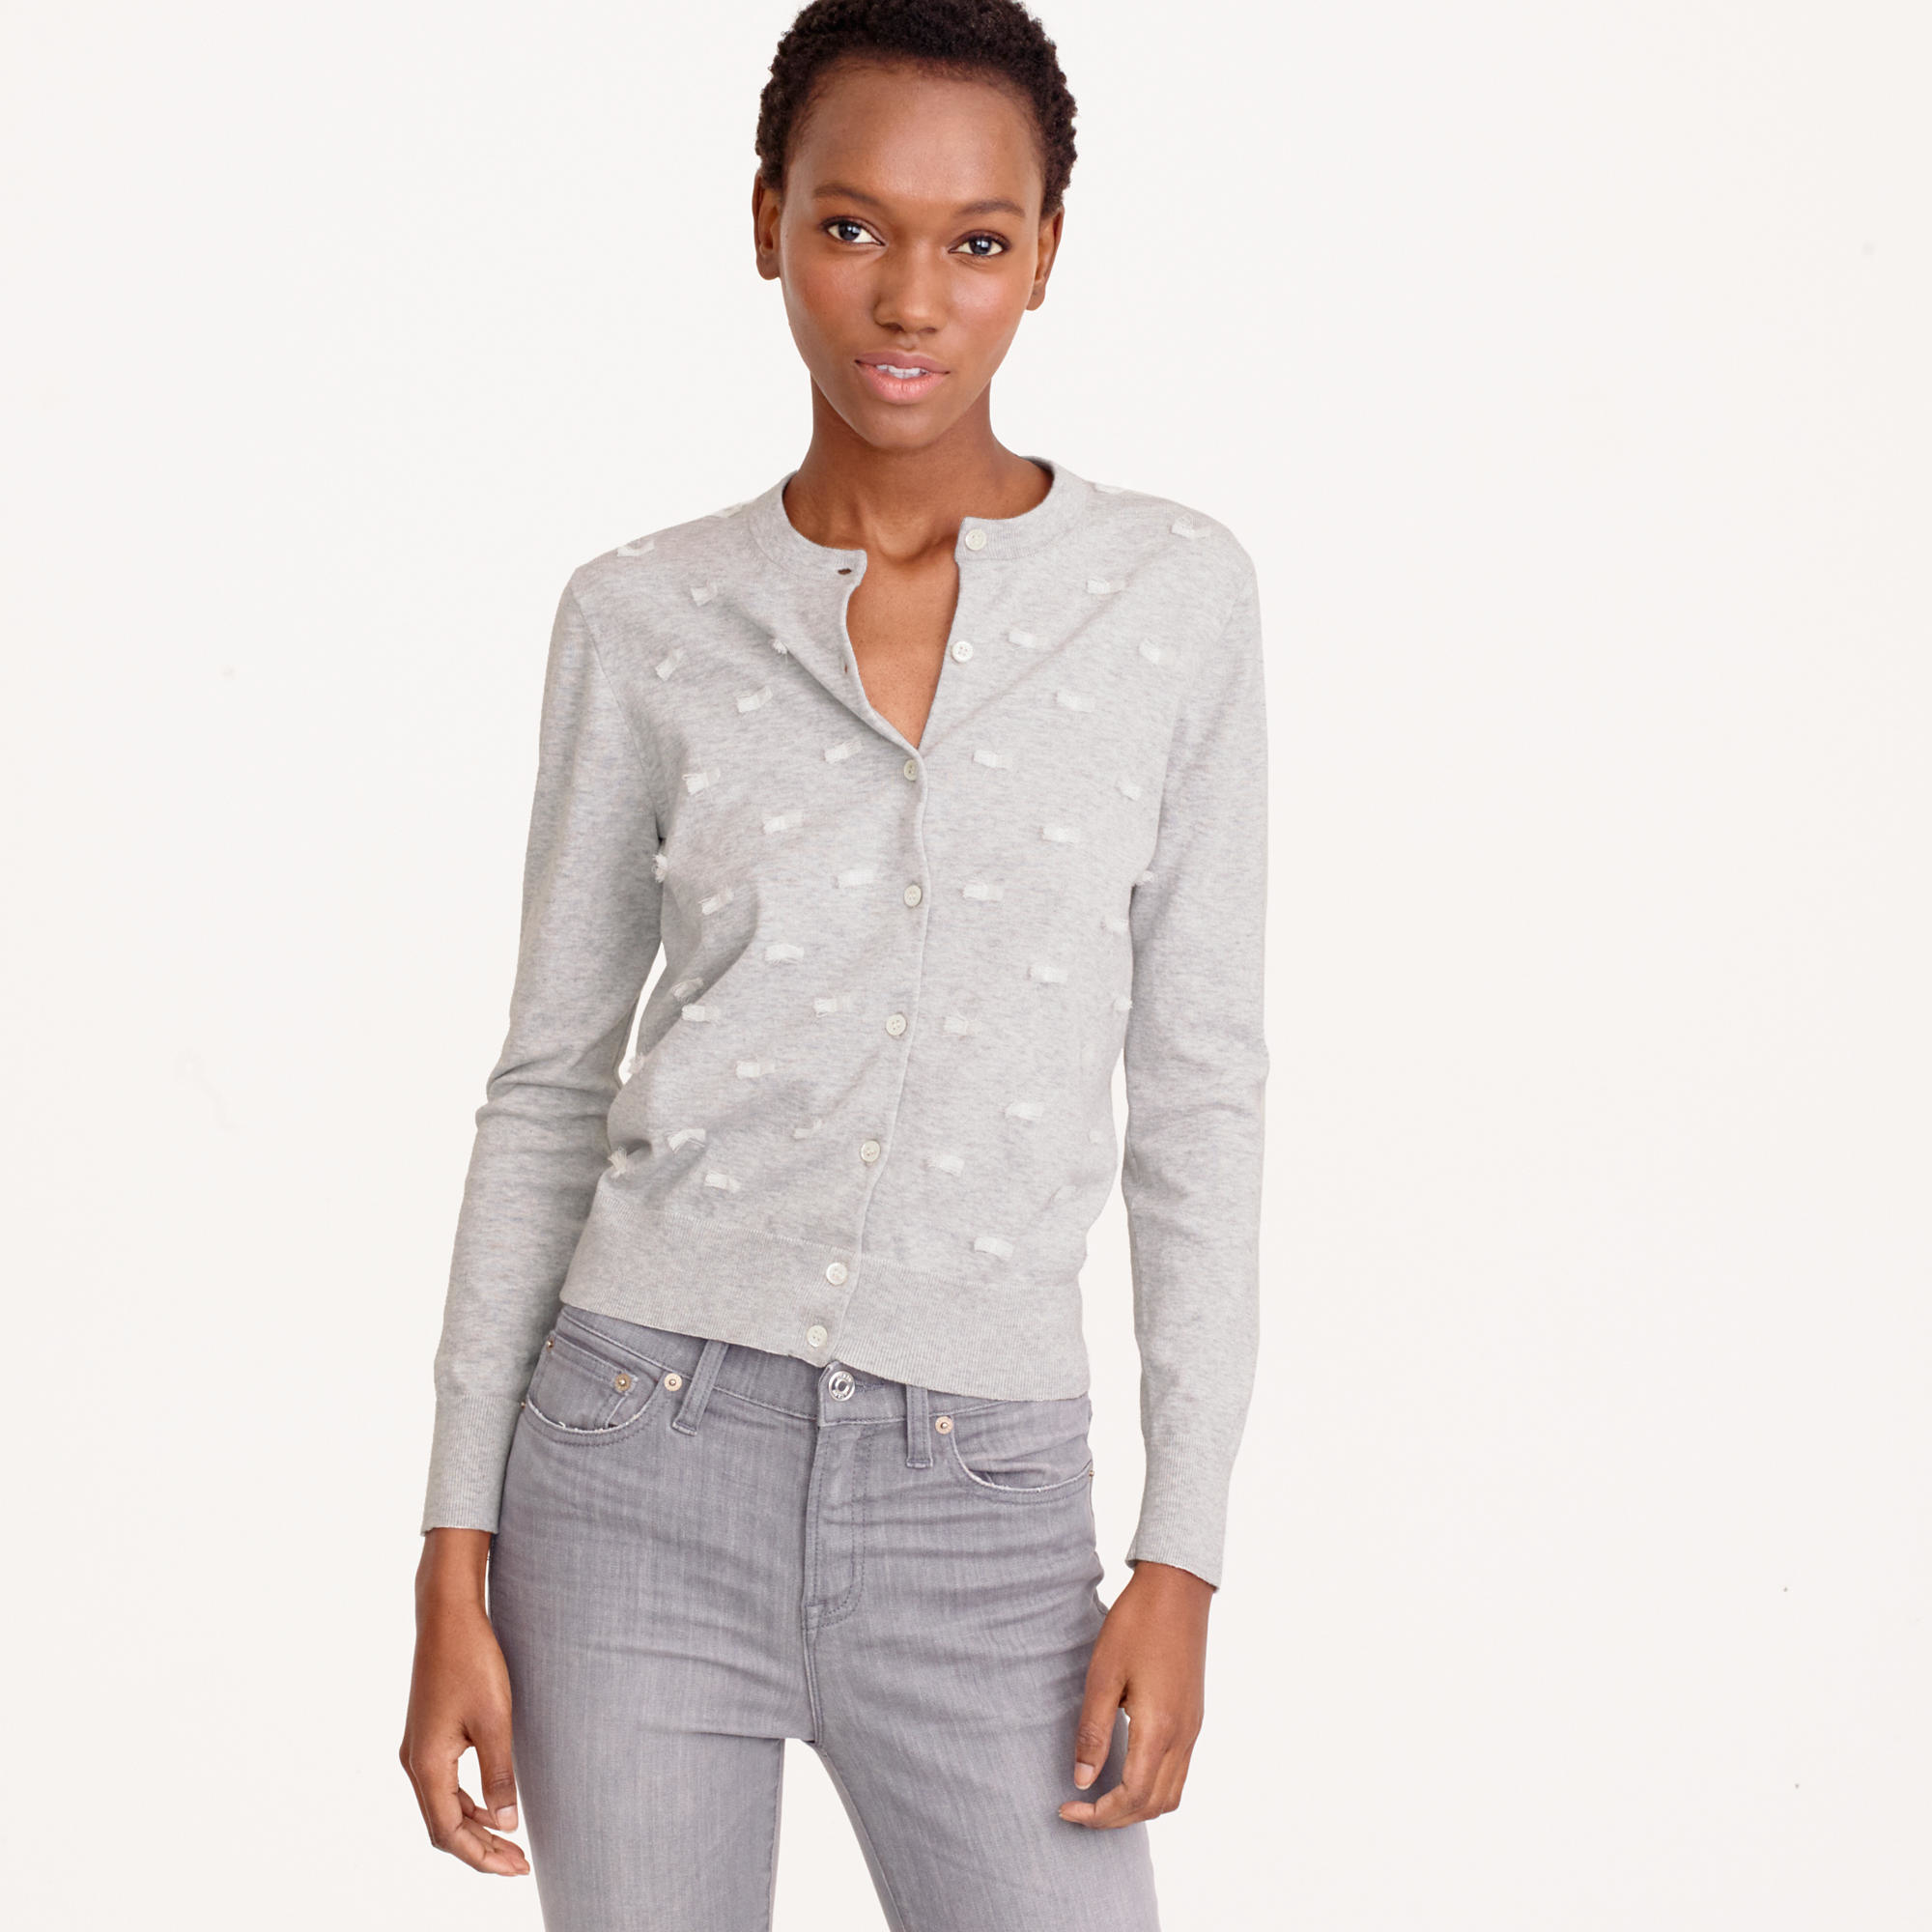 J.crew Clip-dot Cotton Jackie Cardigan Sweater in Gray | Lyst